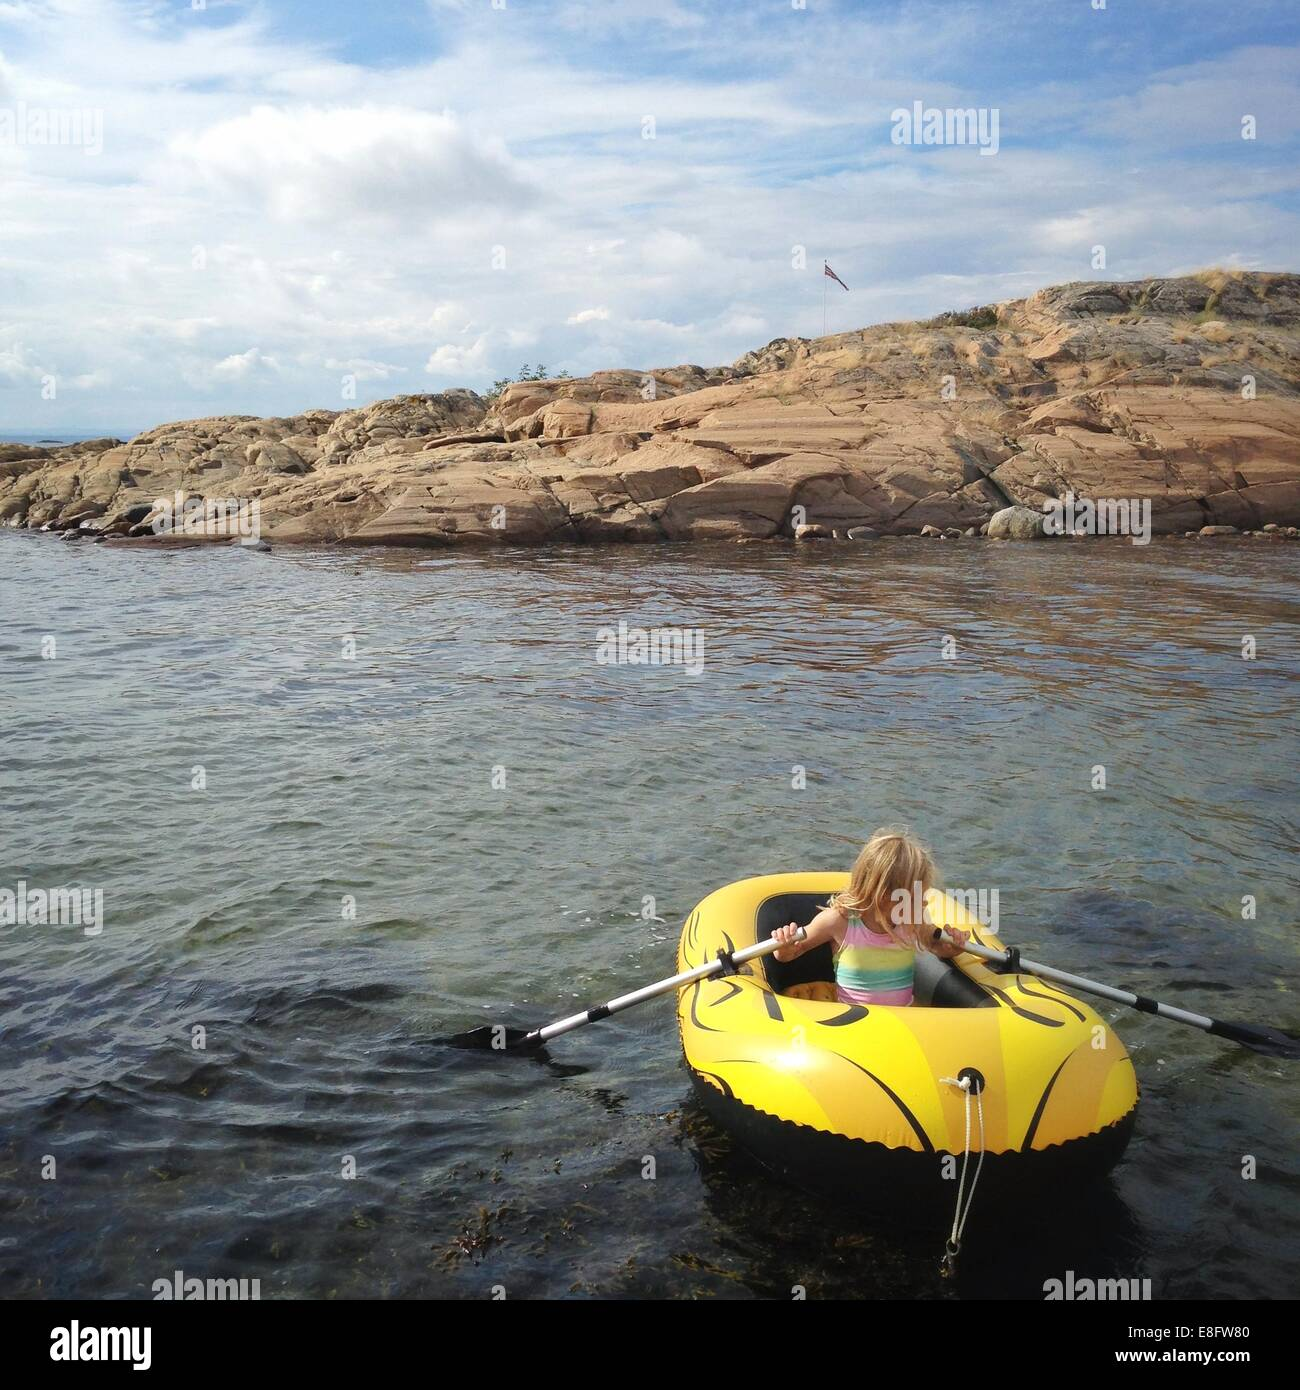 Norway, Girl (12-13) in dinghy - Stock Image